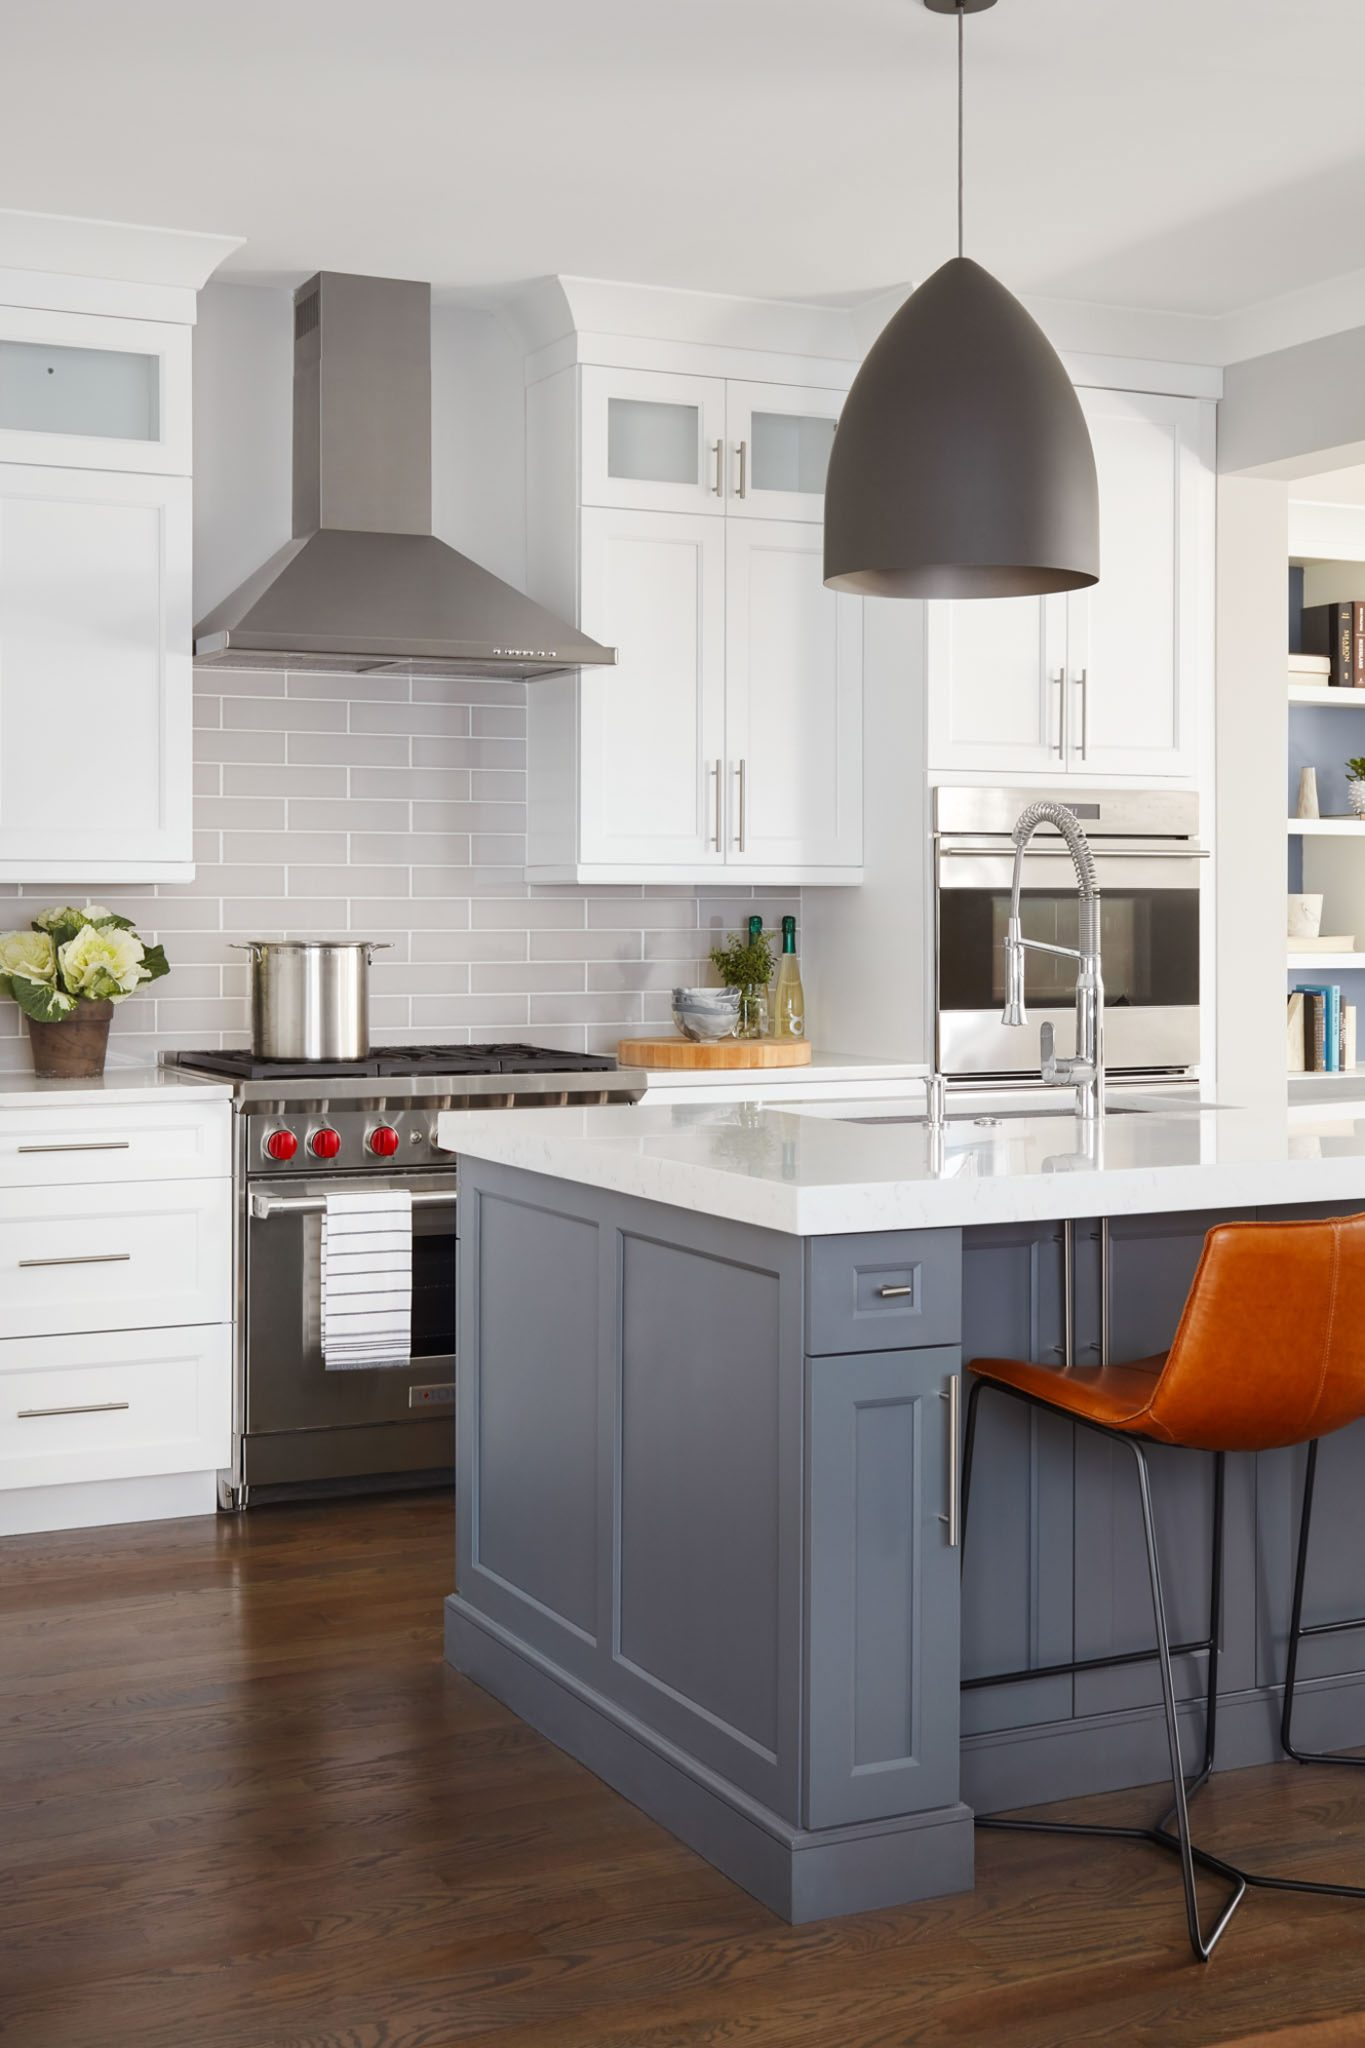 Lincoln Park greystone chef's kitchen by Centered by Design